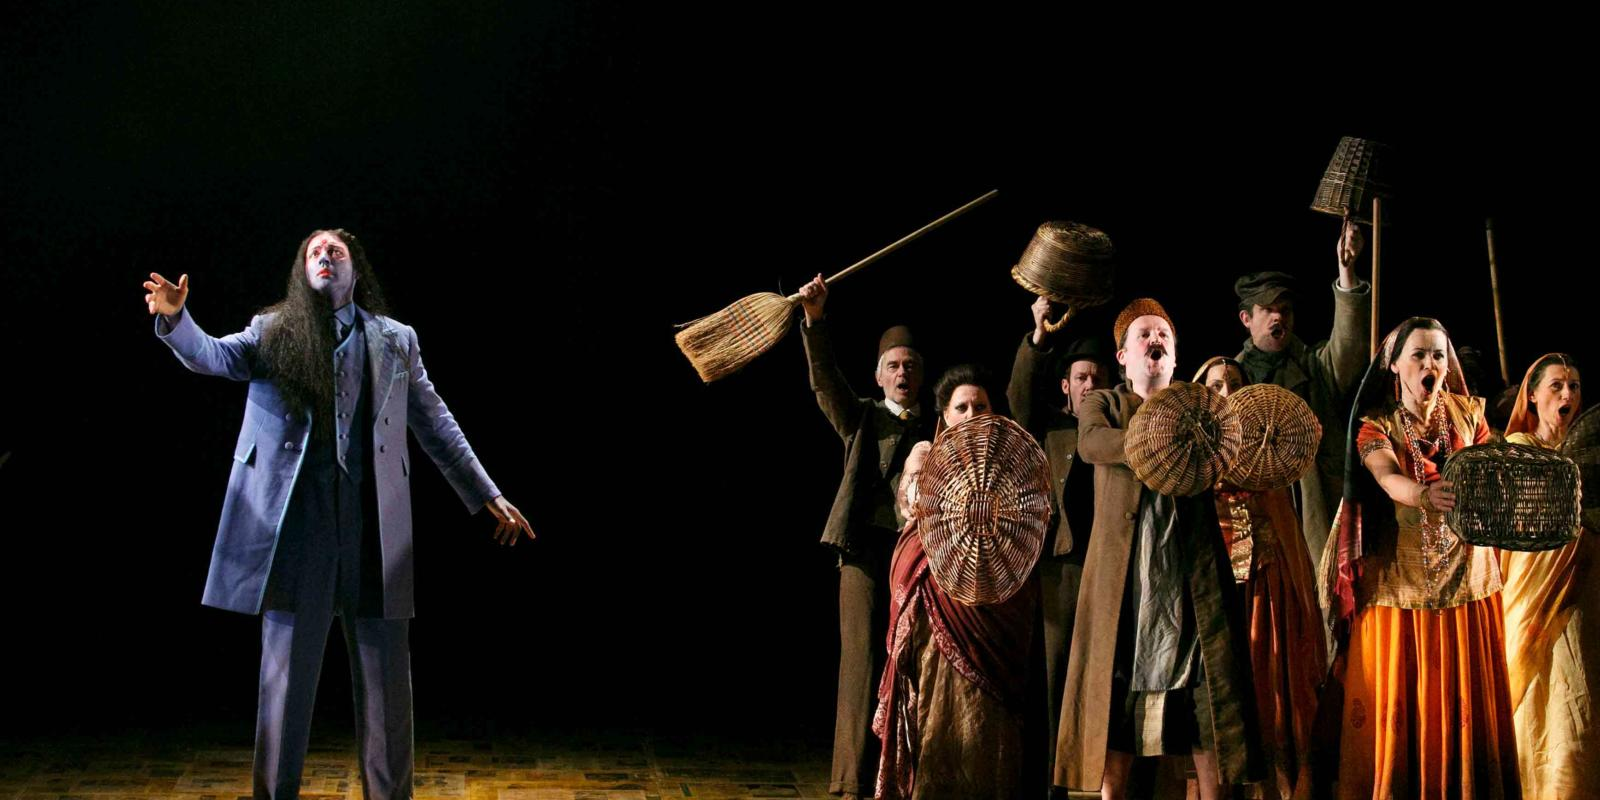 An image of Nicholas Masters and members of the ENO Chorus in Phelim McDermott's 2013 production of Satyagraha